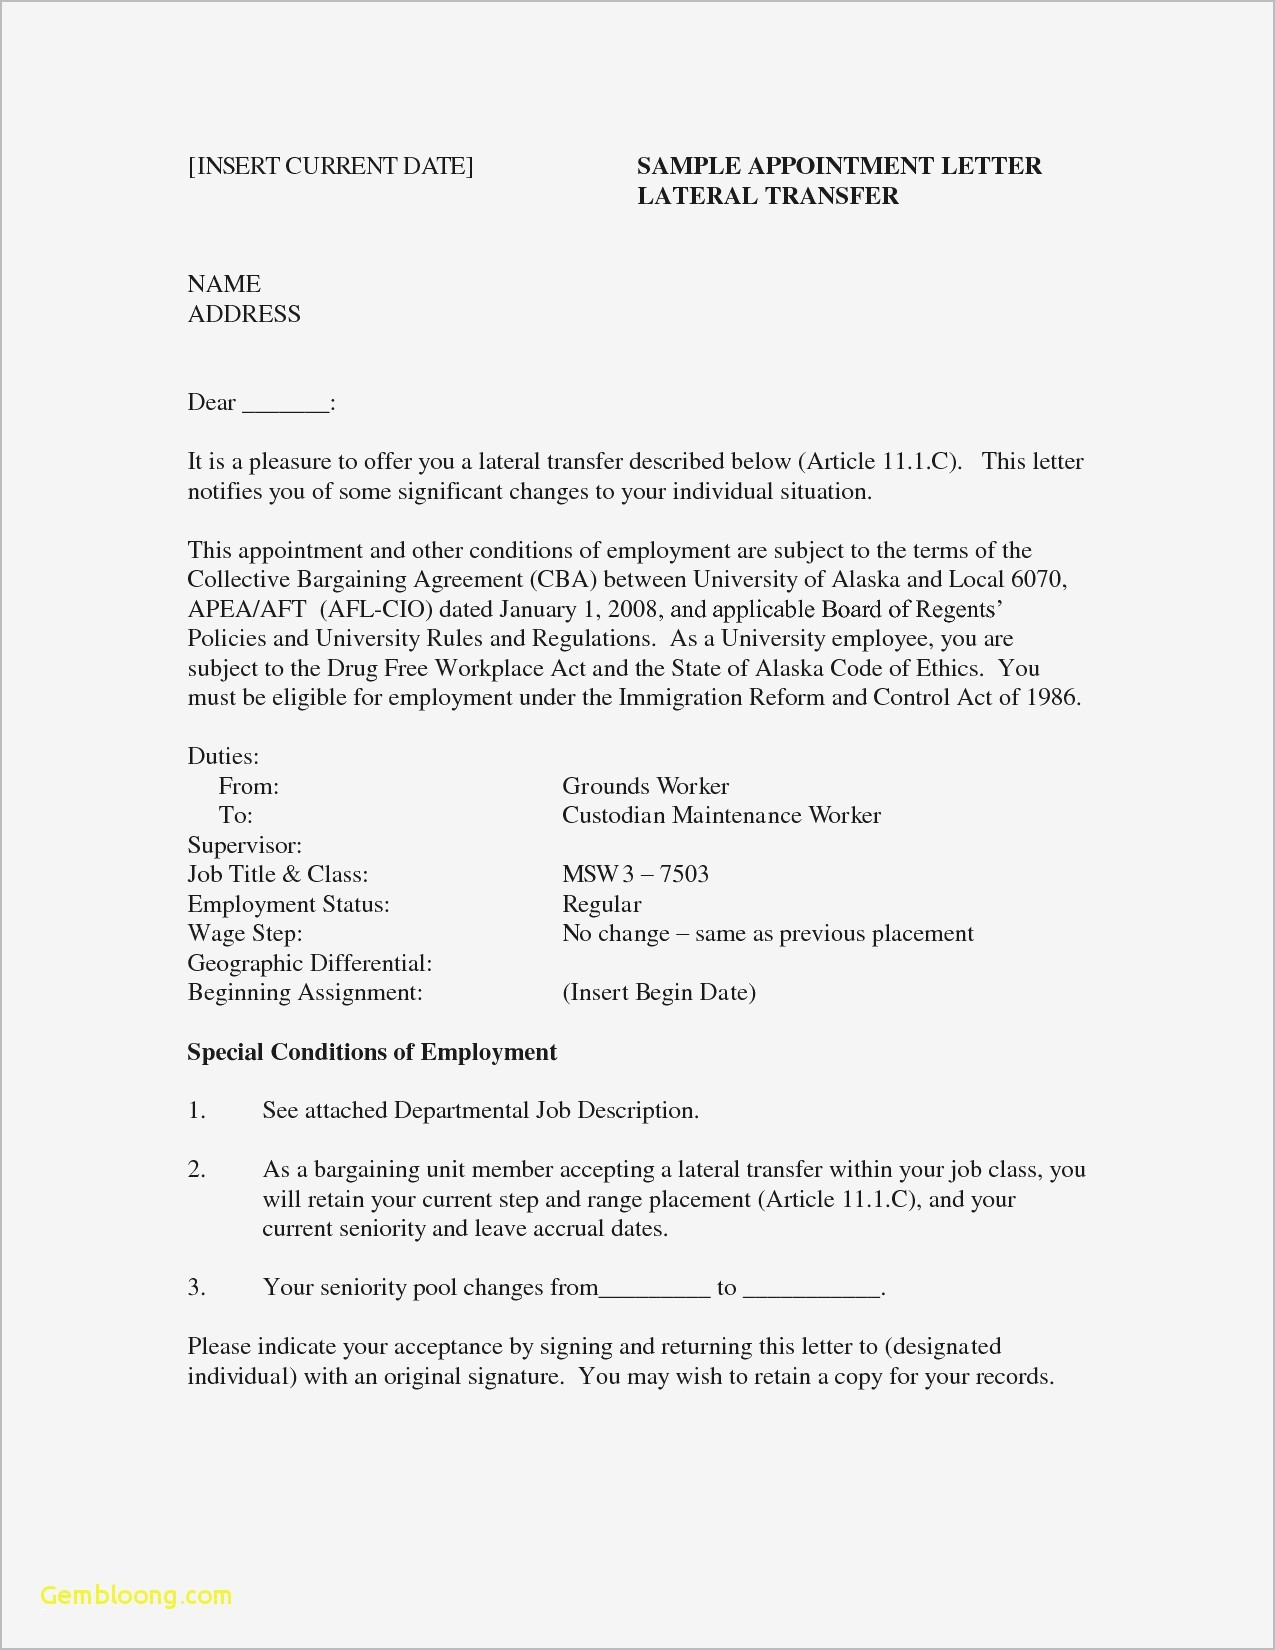 actor resume template word Collection-Sample Chronological Resume Format Free Downloads Best Actor Resume Unique Actor Resumes 0d Acting Resume Format 20-b